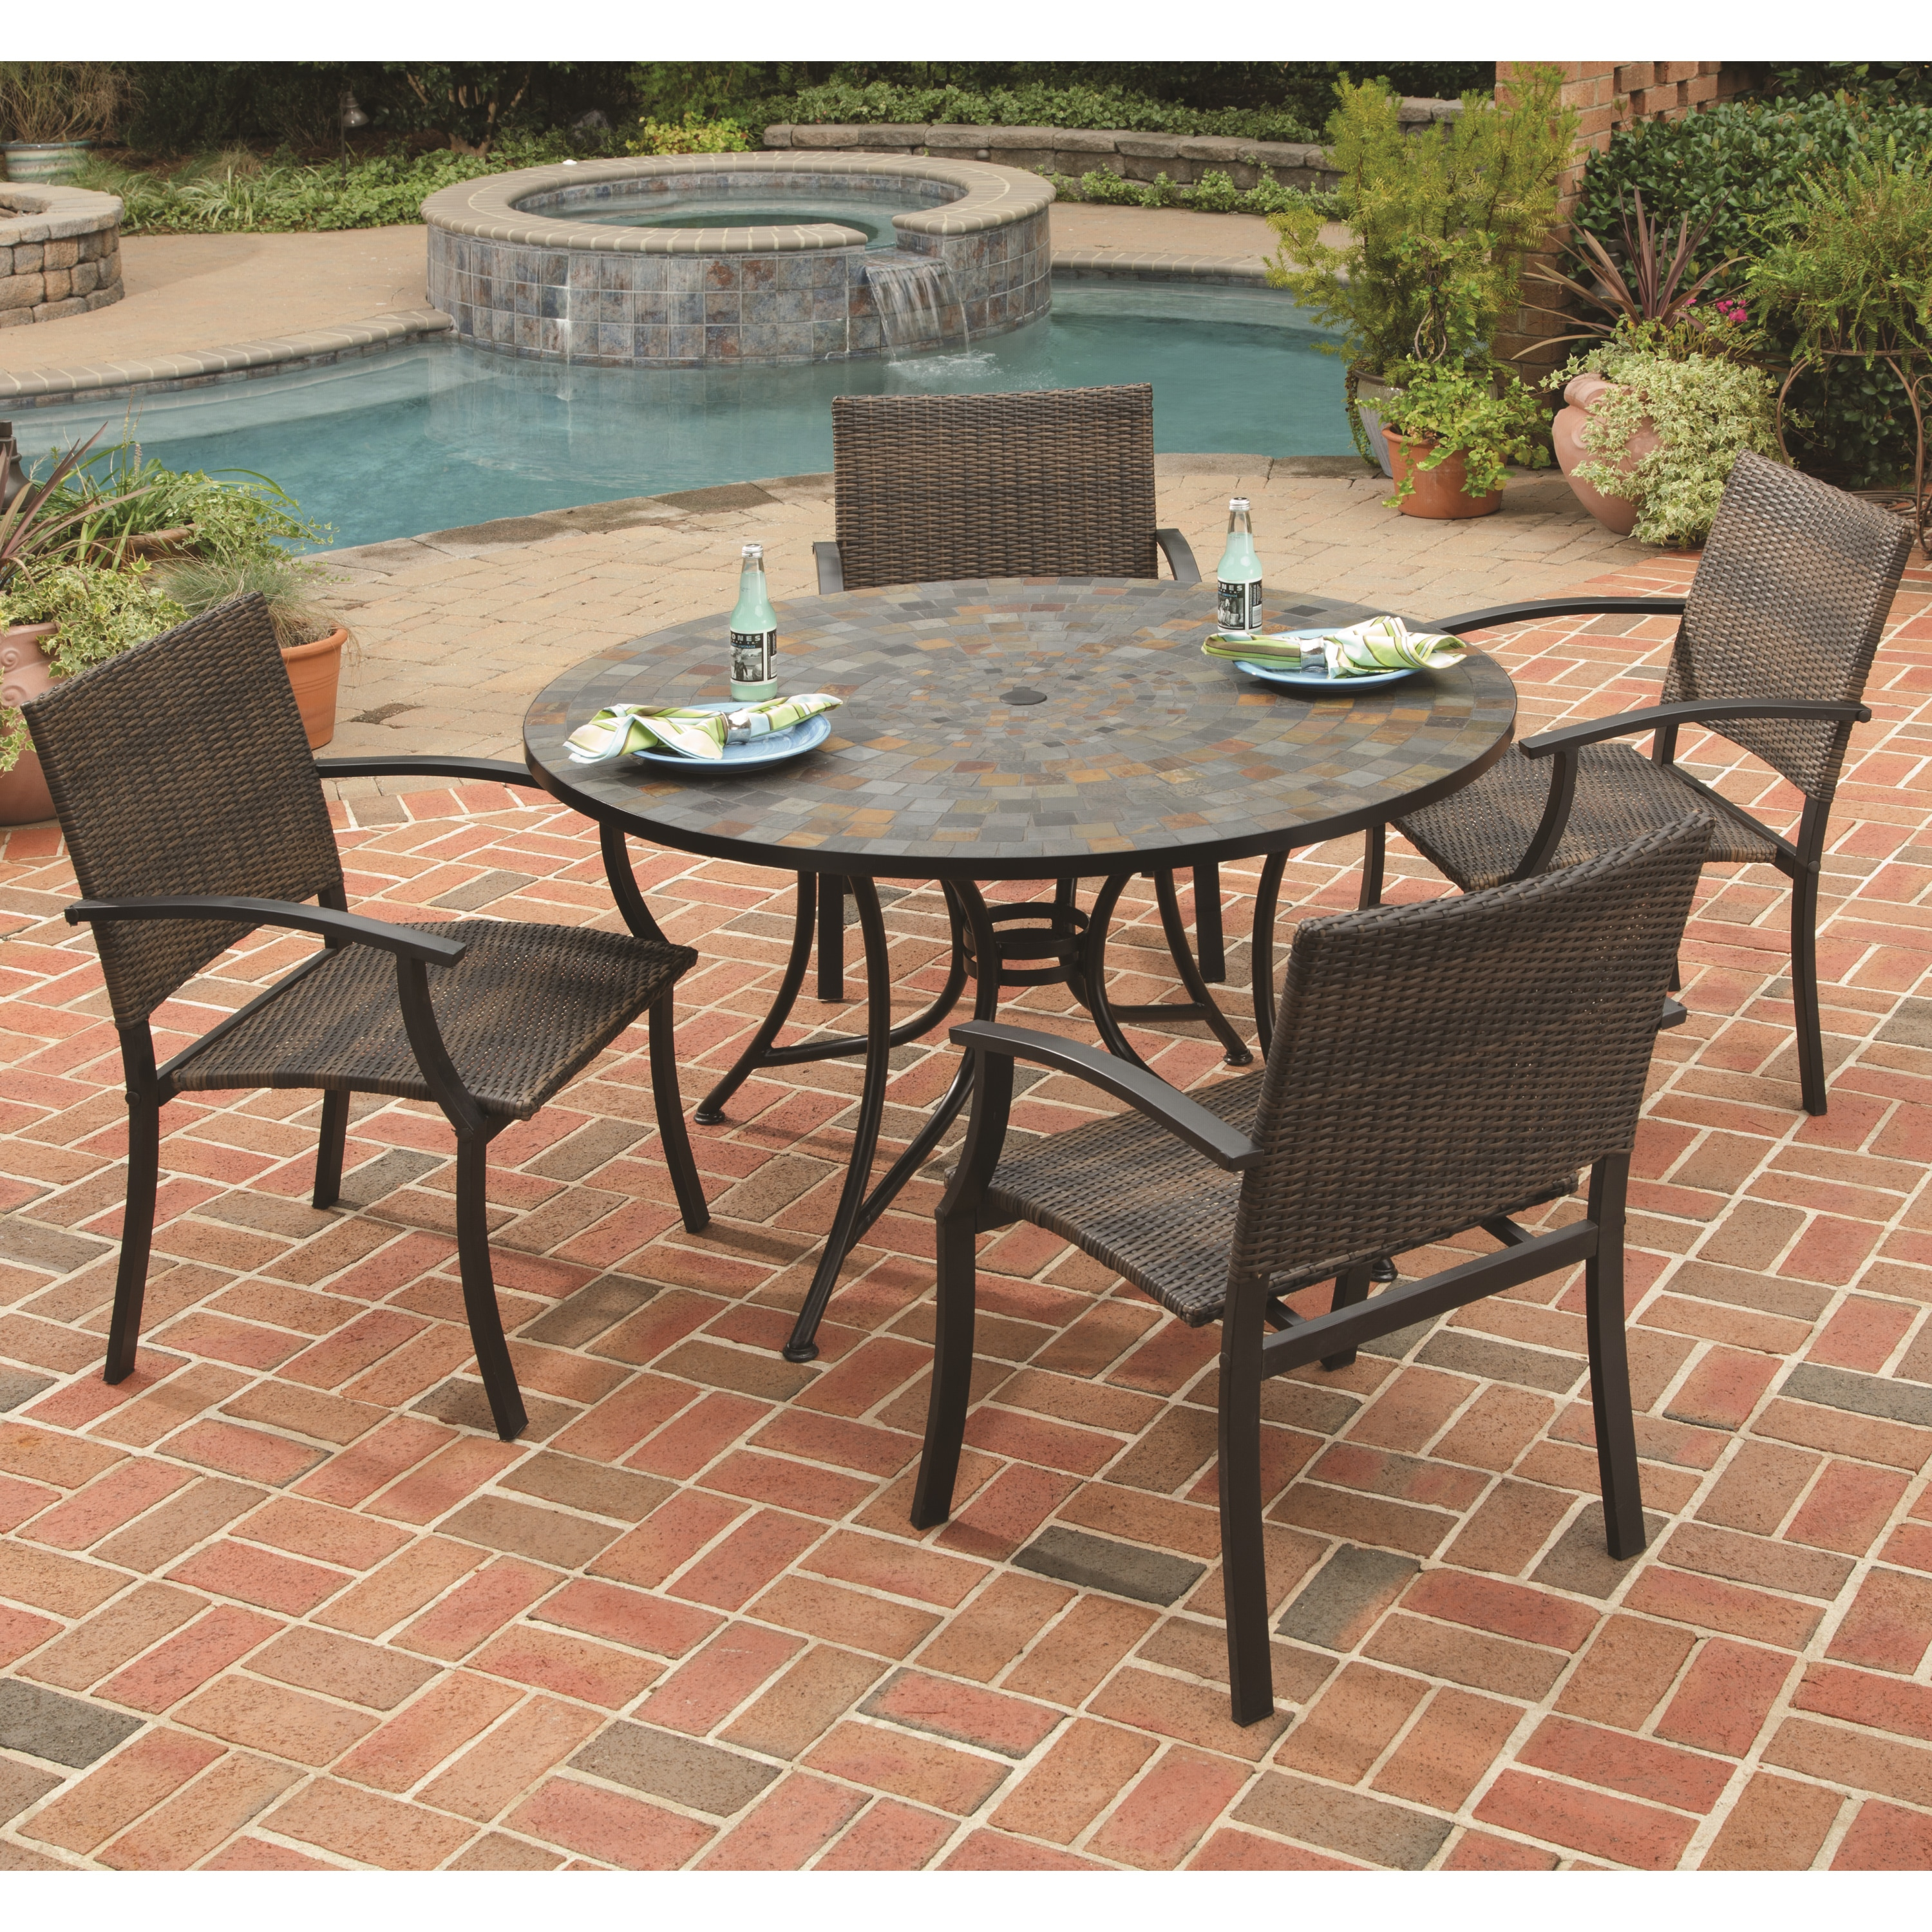 Stone Harbor Table And Newport Arm Chair 5-piece Dining Set By Home Styles - Overstock - 6695032